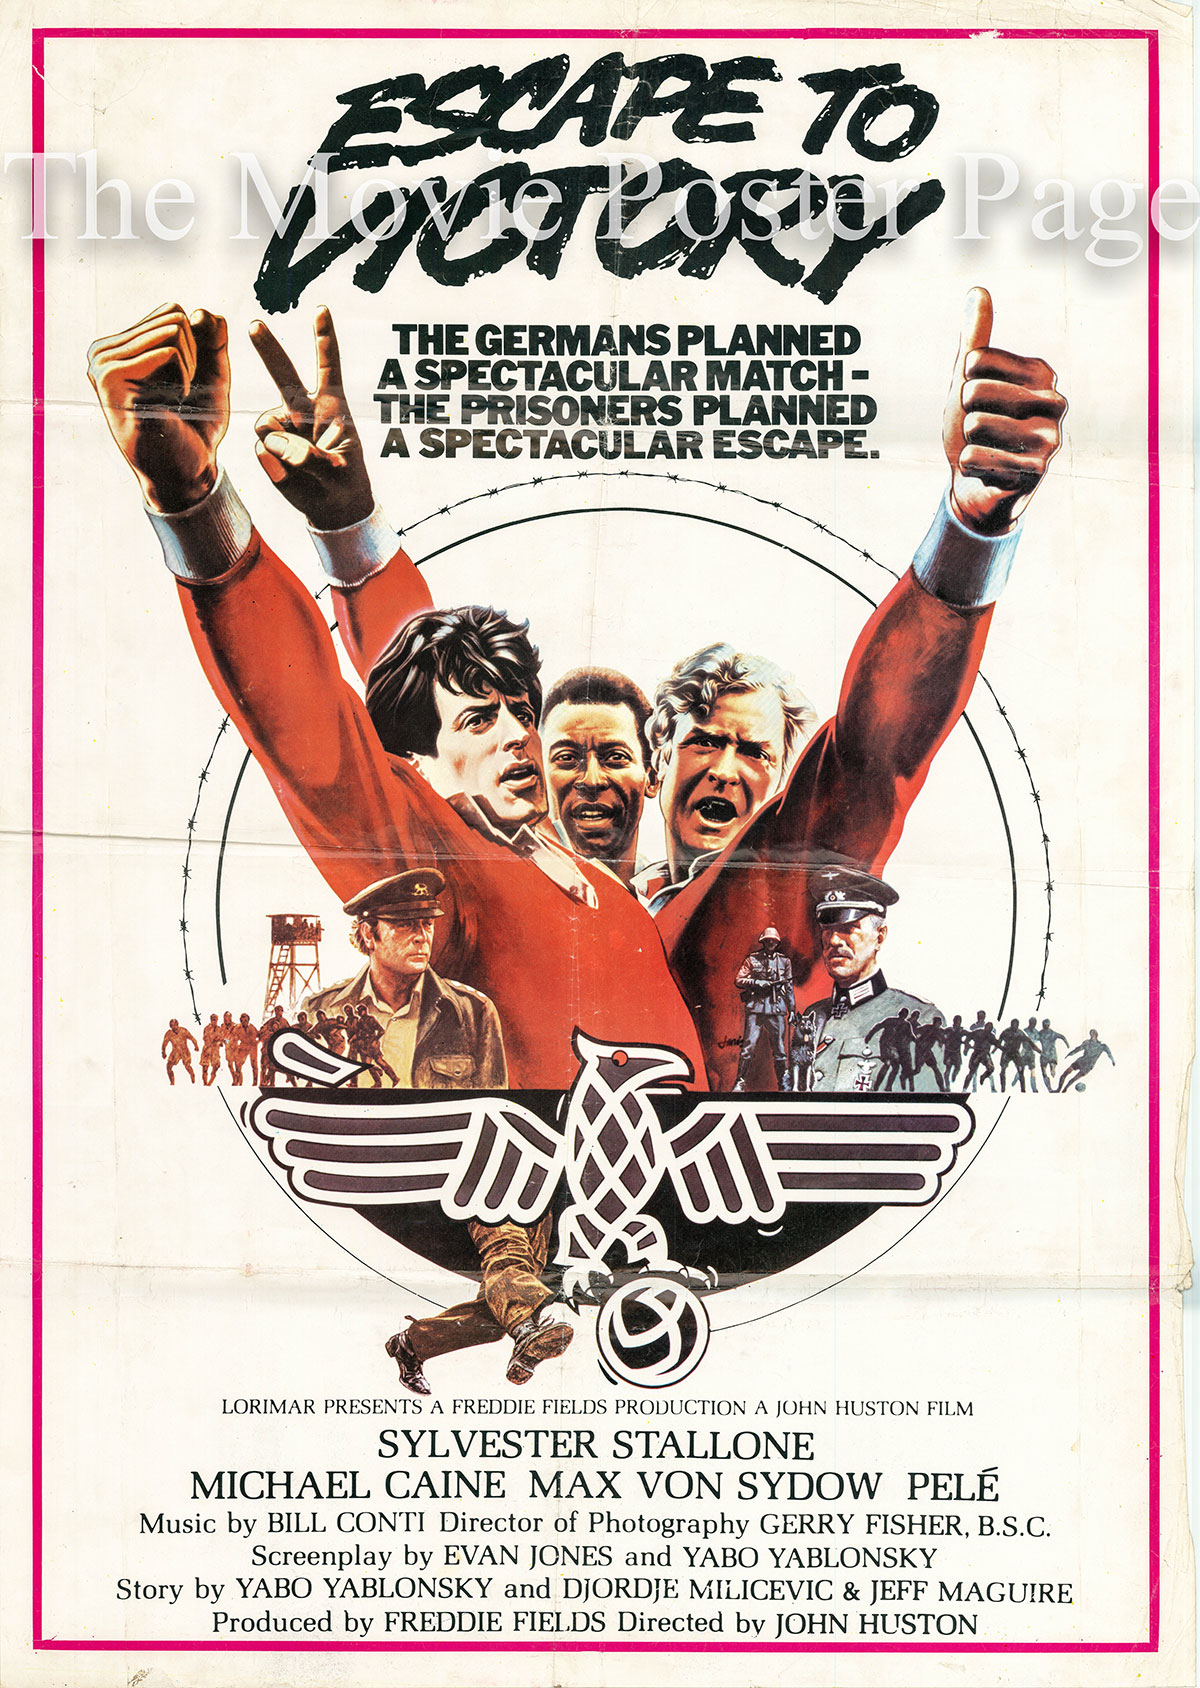 Pictured is a UK promotional poster for the 1981 John Huston film Escape to Victory starring Sylvester Stallone.